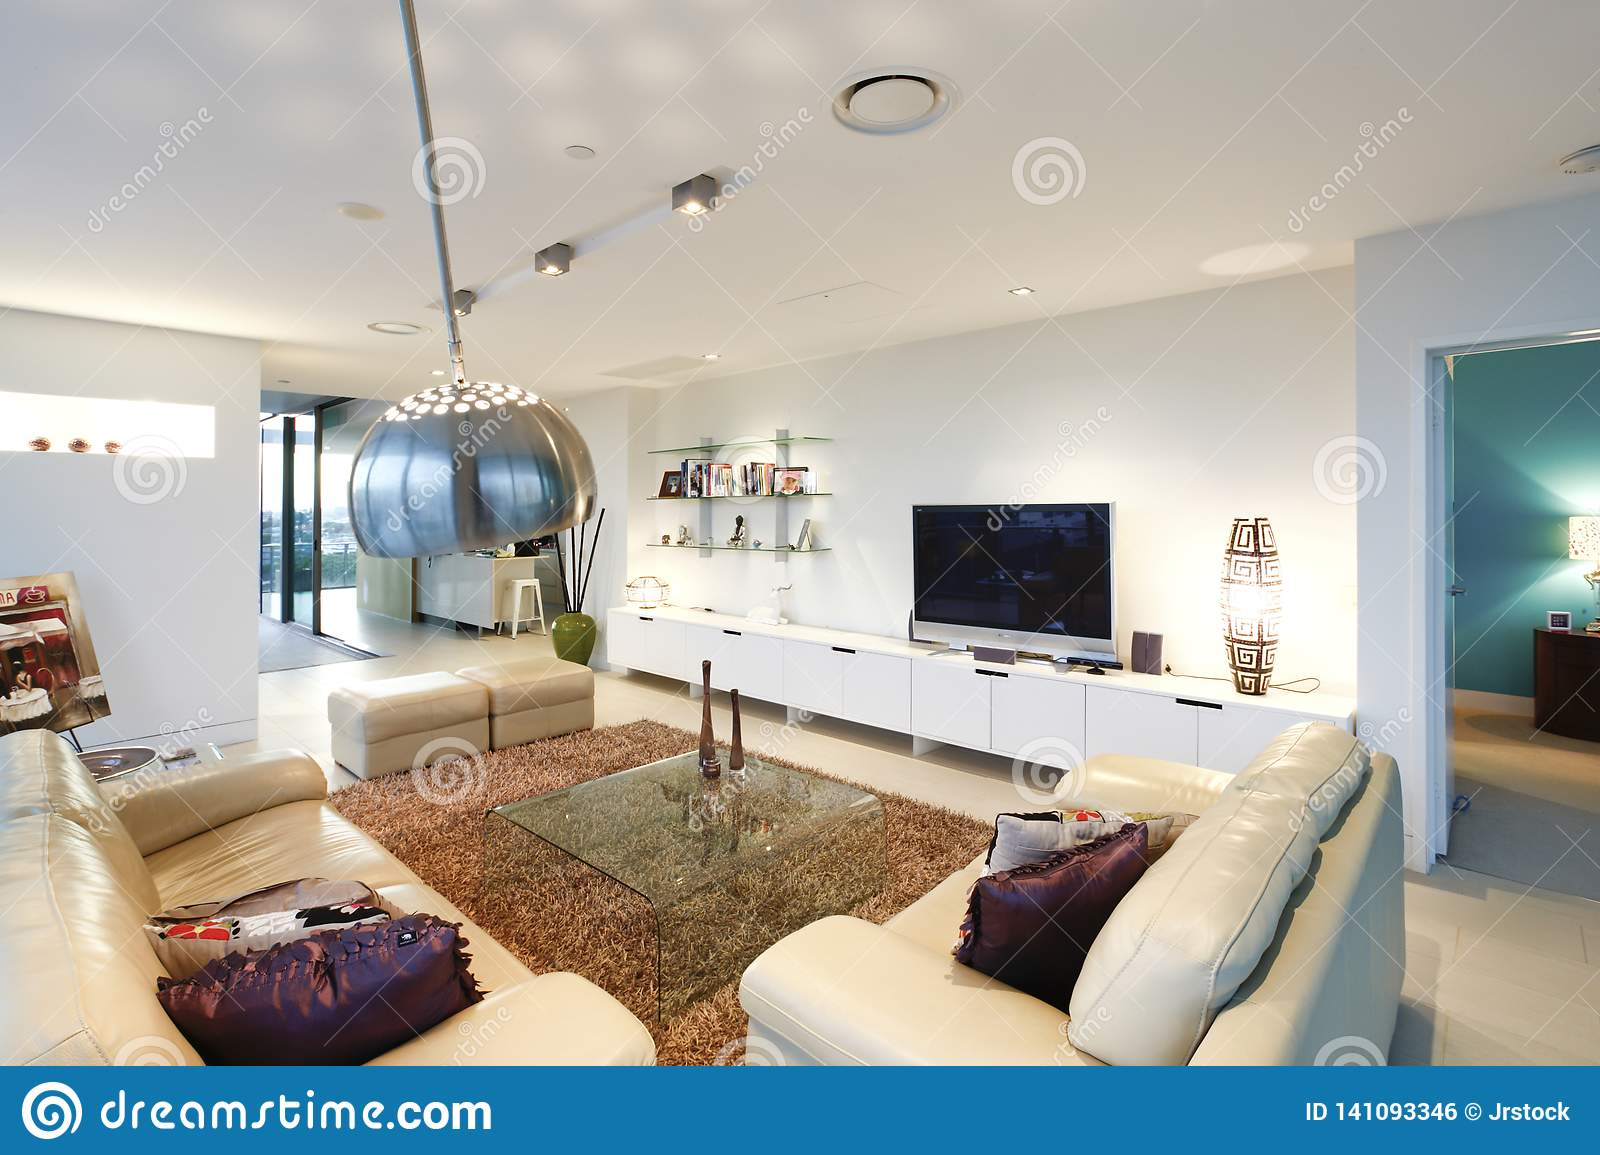 Television In Living Room Near Sofa Set Stock Photo - Image ...